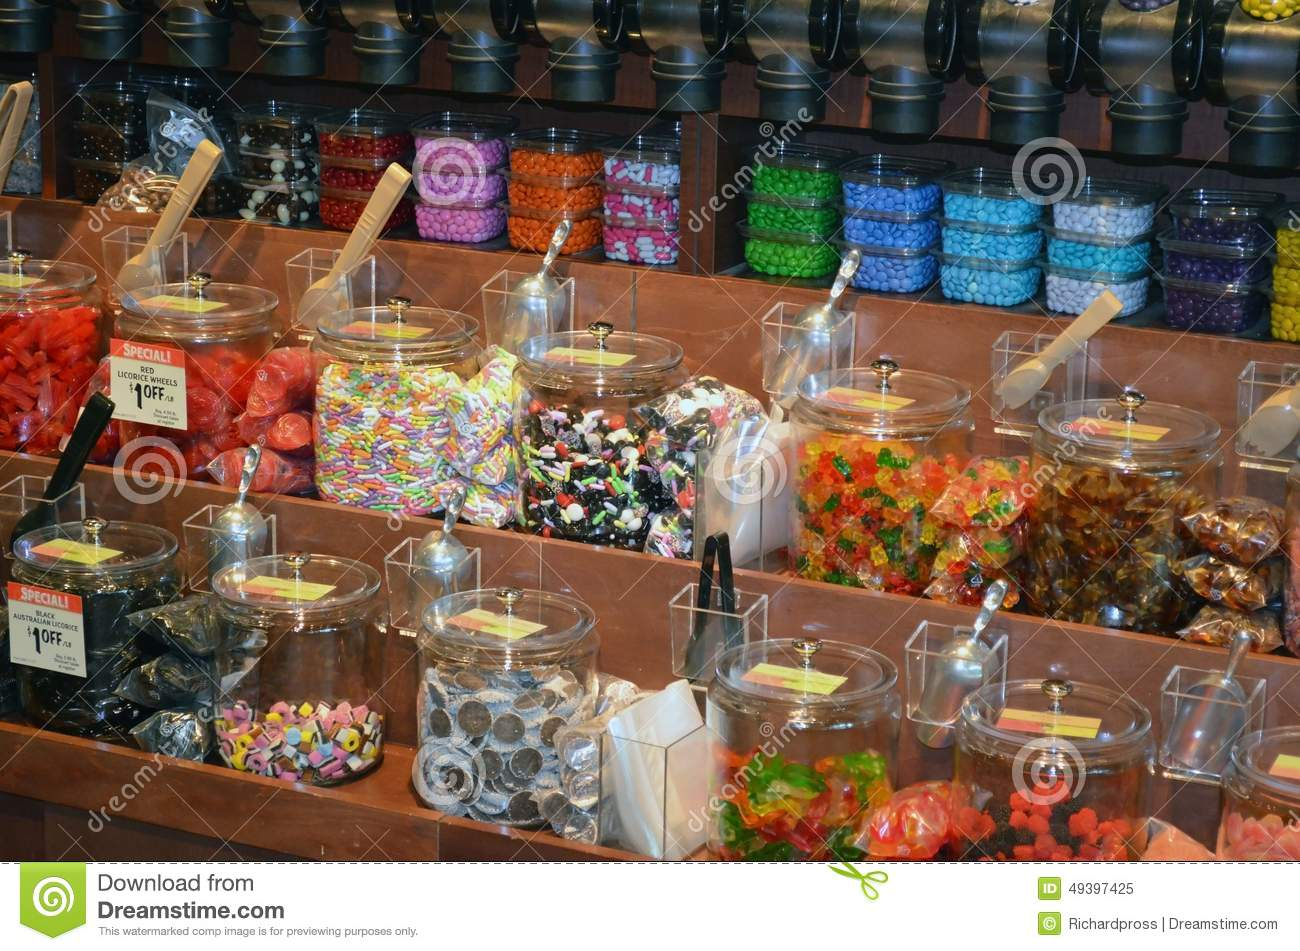 royaltyfree stock photo download old fashioned candy